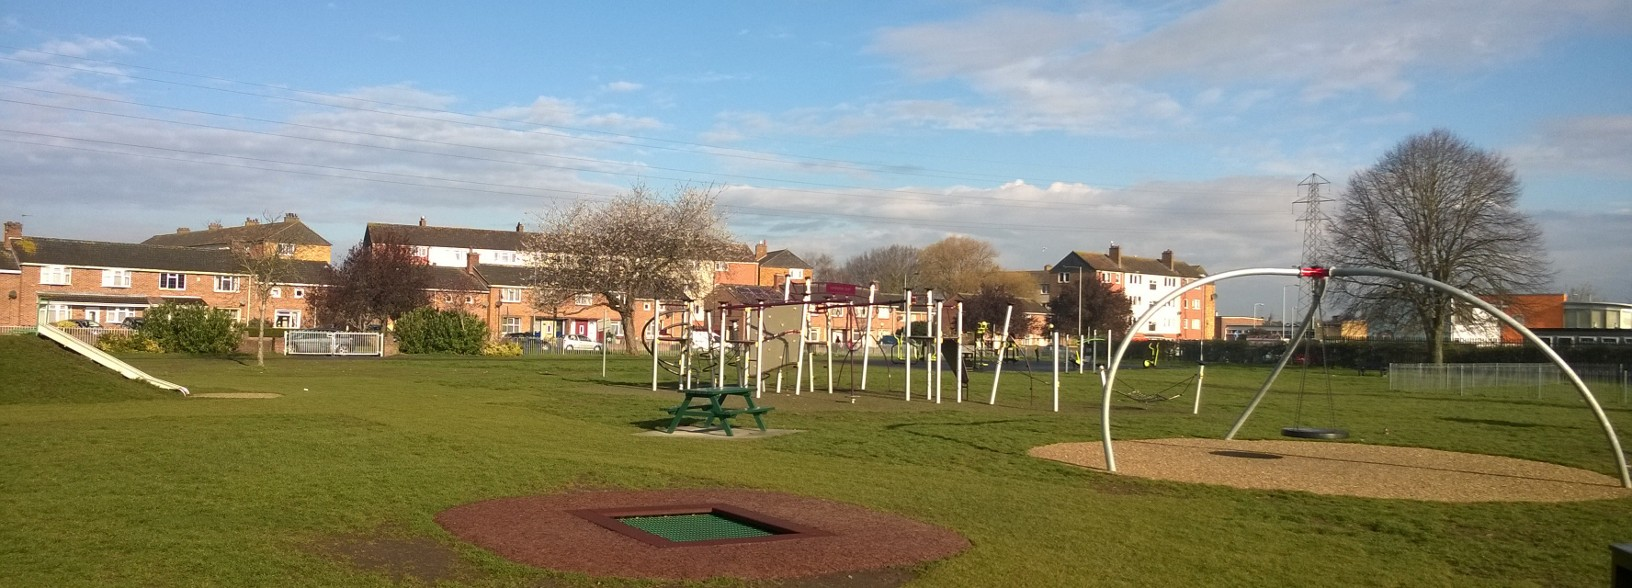 CORONATION PARK FAMILY FUN DAY TO CELEBRATE PARK REVAMP